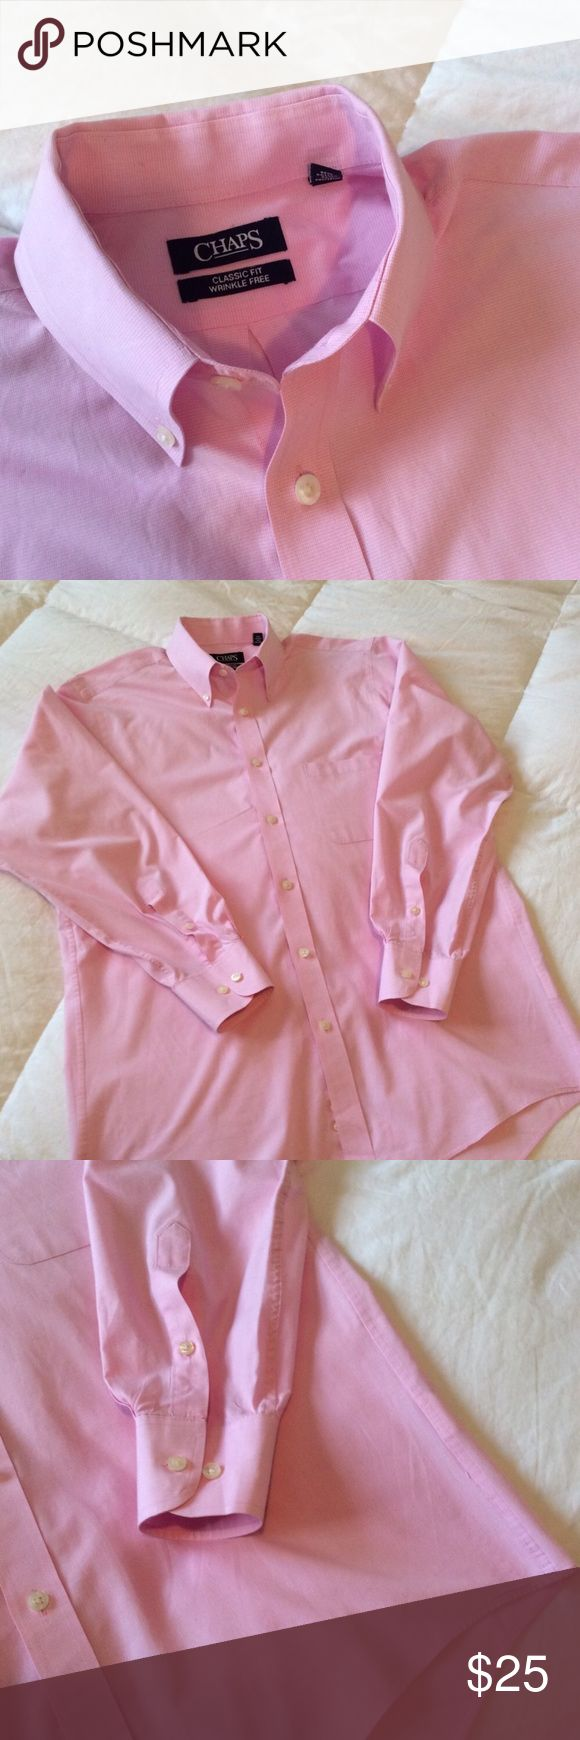 Size 15.5 Wrinkle Free Dress Shirt 34/35 Size 15.5 34/35 pink dress shirt. Perfect for Easter. Classic fit. Wrinkle free. Chaps Shirts Dress Shirts